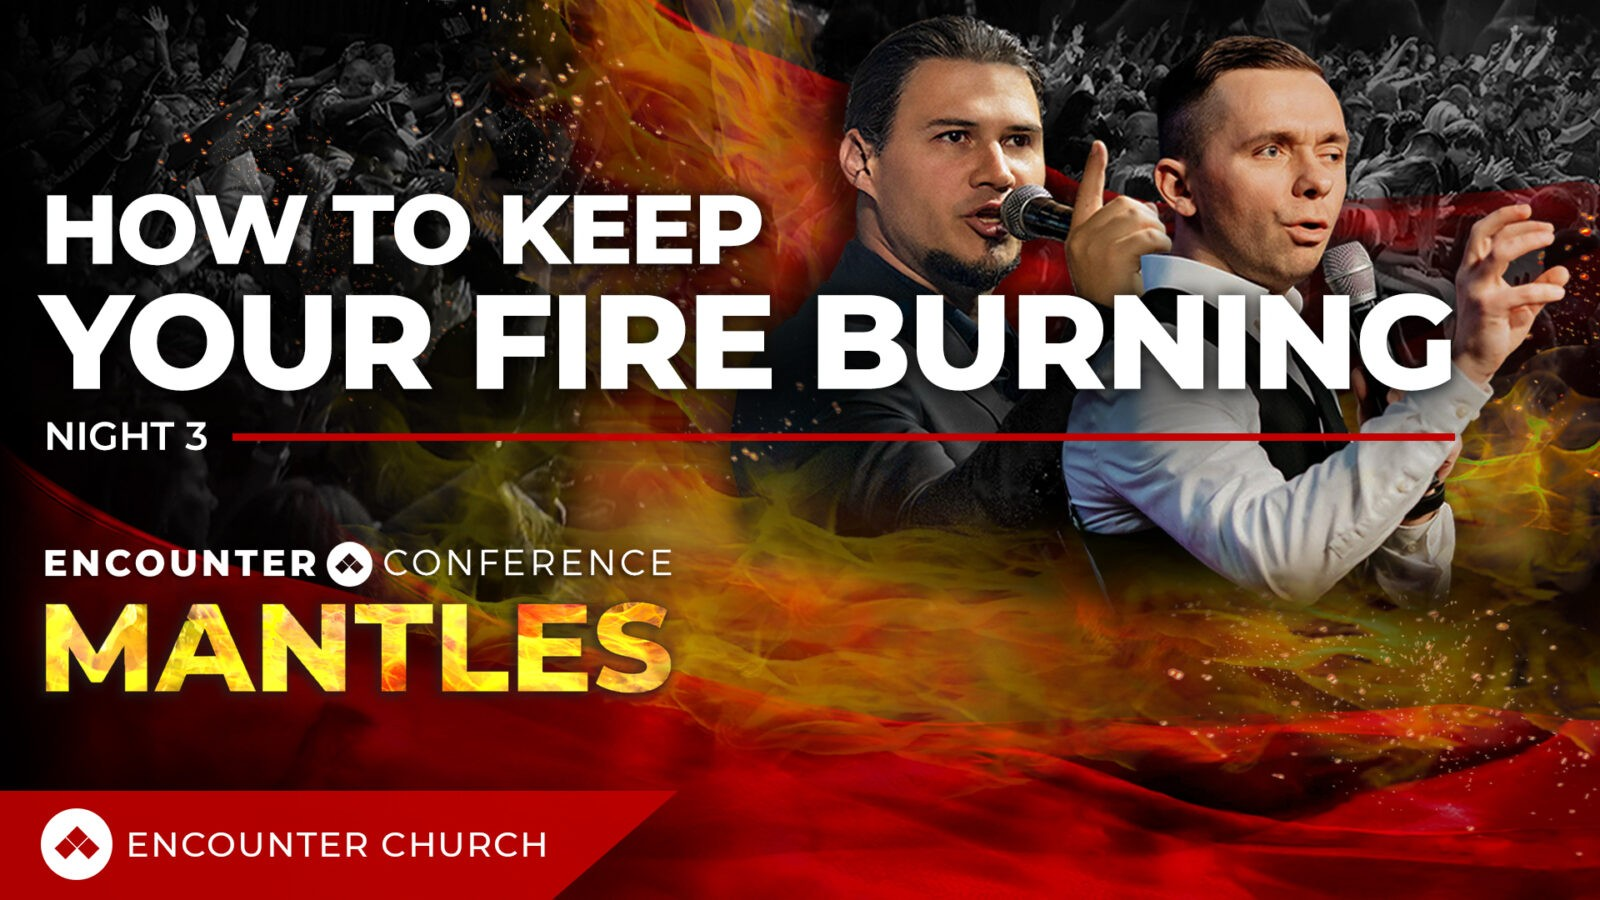 ENCOUNTER CONFERENCE | MANTLES | How To Keep Your Fire Burning